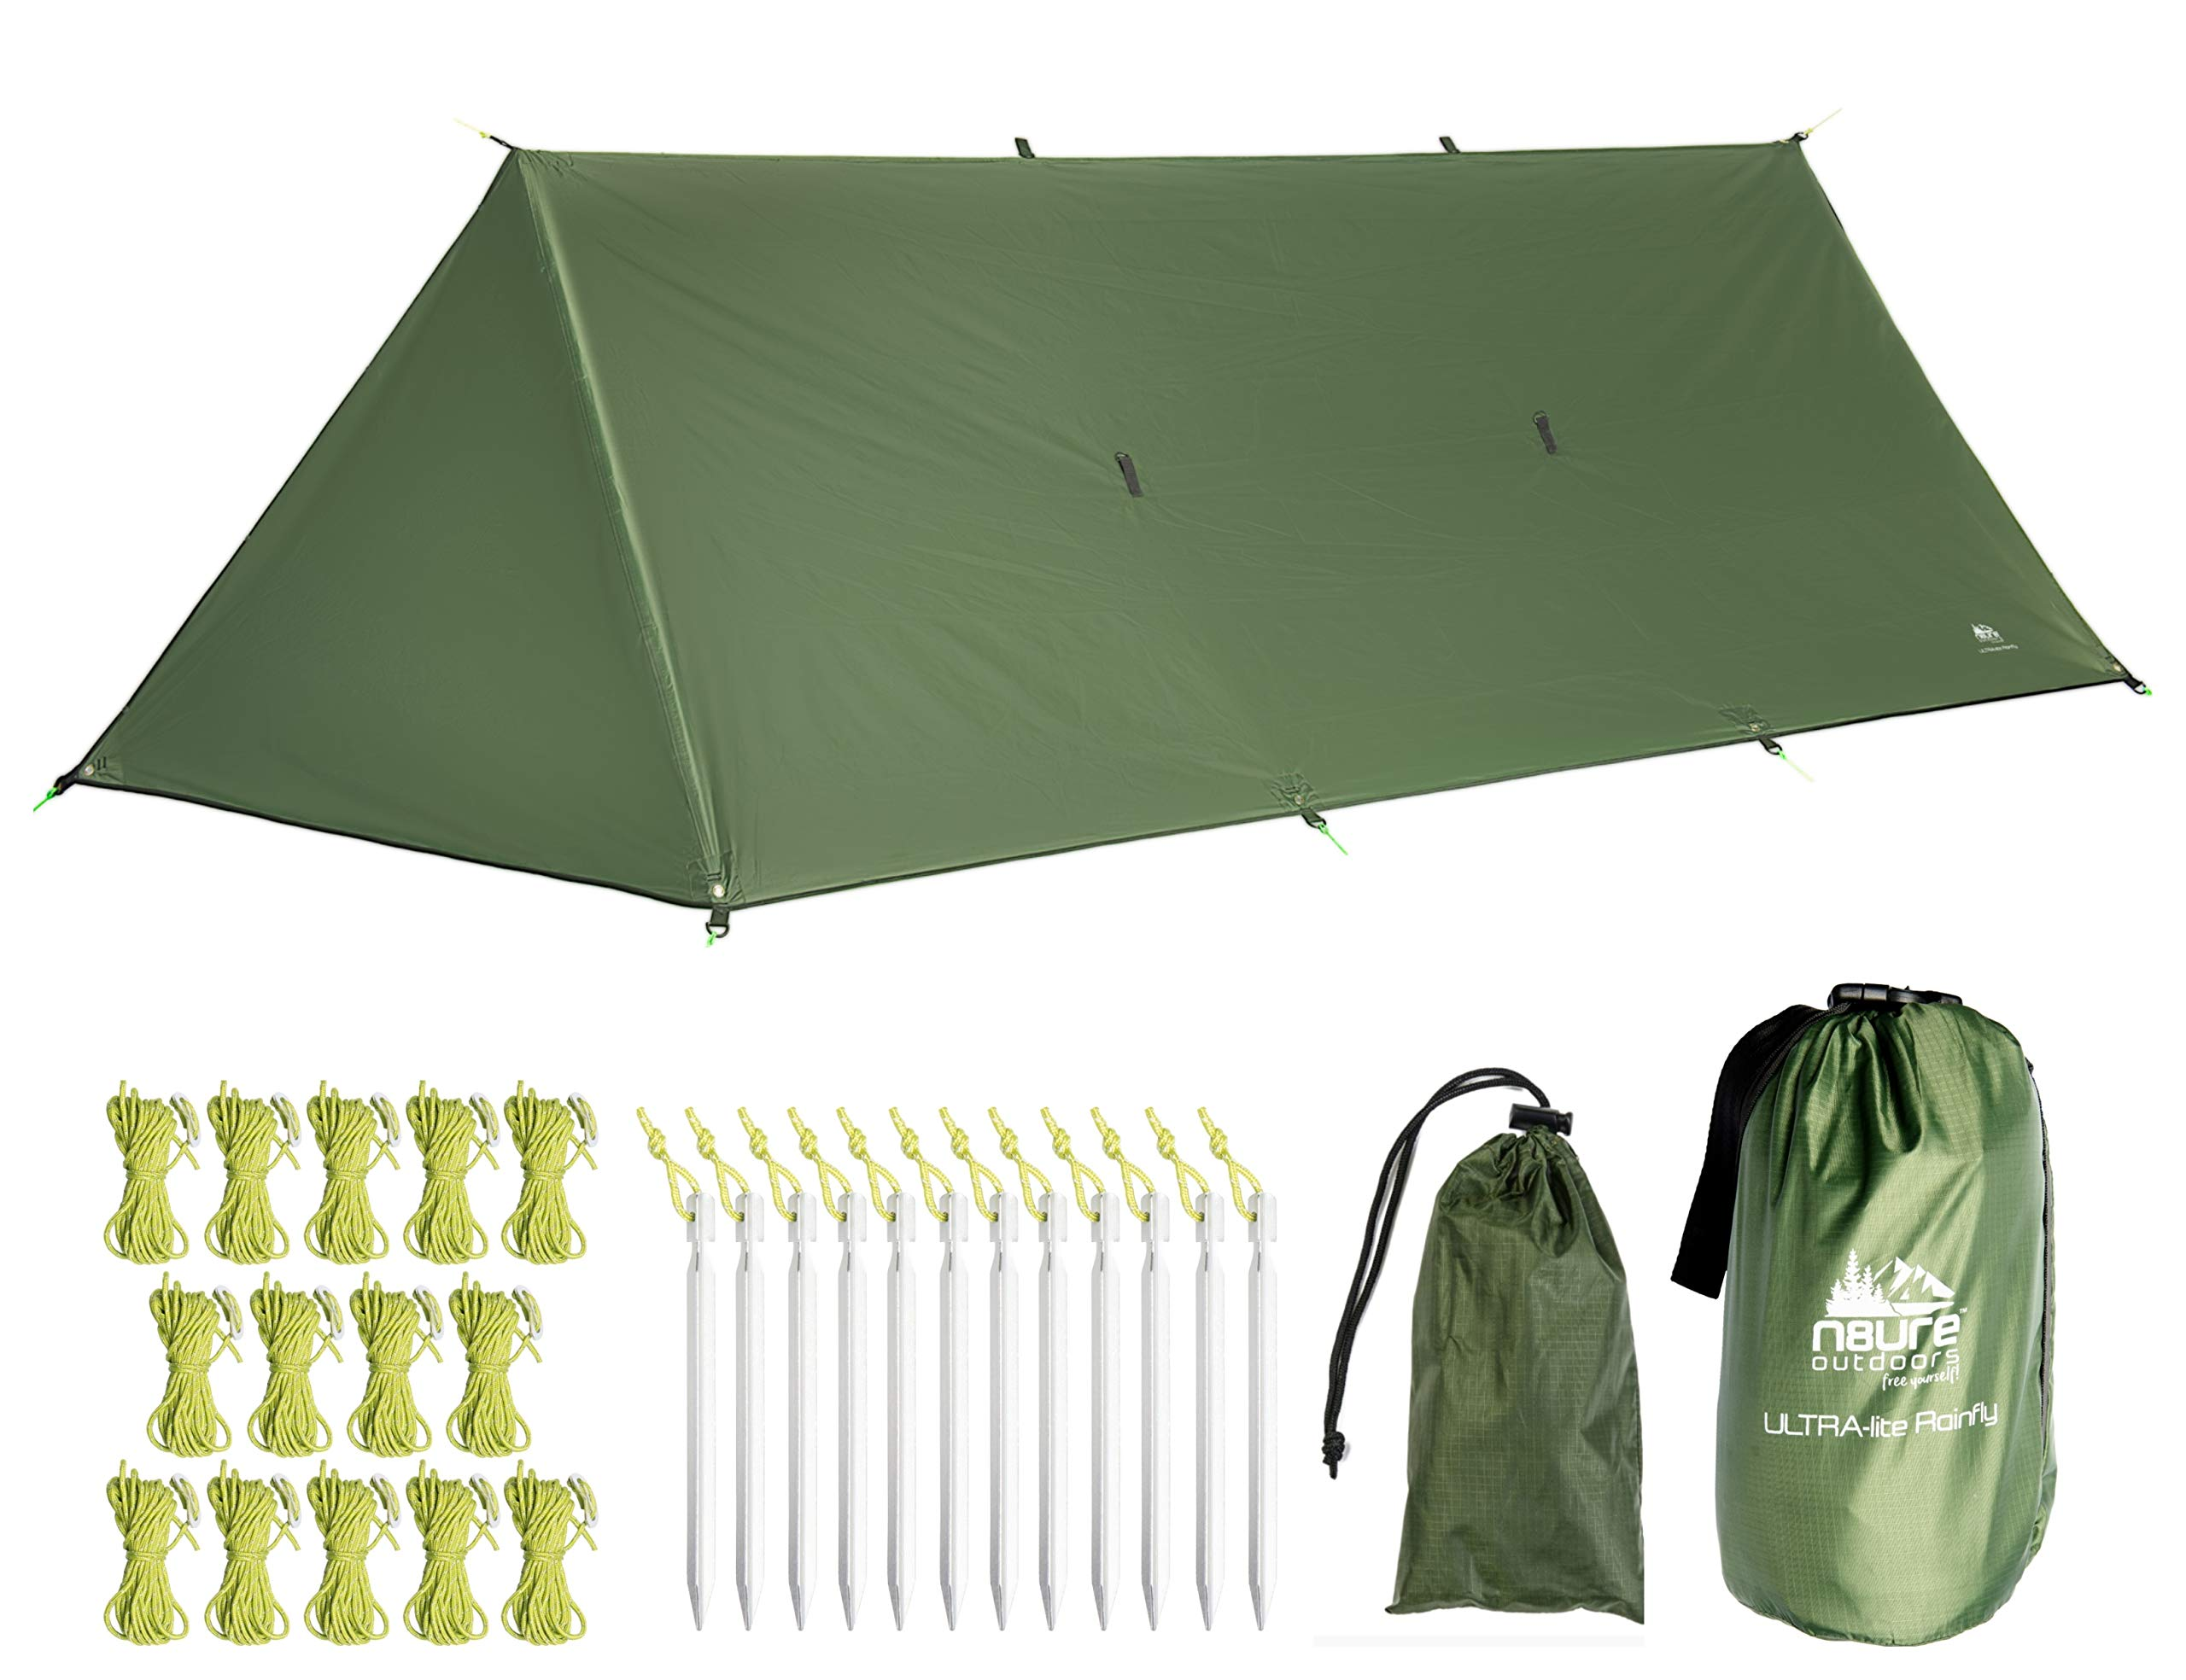 Premium Rainfly Tarp 10x10x16' Waterproof Ripstop Nylon Hammock Camping Shelter Ultralight Trekking Tent Canopy 20 x Tie-Outs Backpack Hike Bushcraft Survival Gear Includes Stakes Ropes (Army Green) by N8URE Outdoors